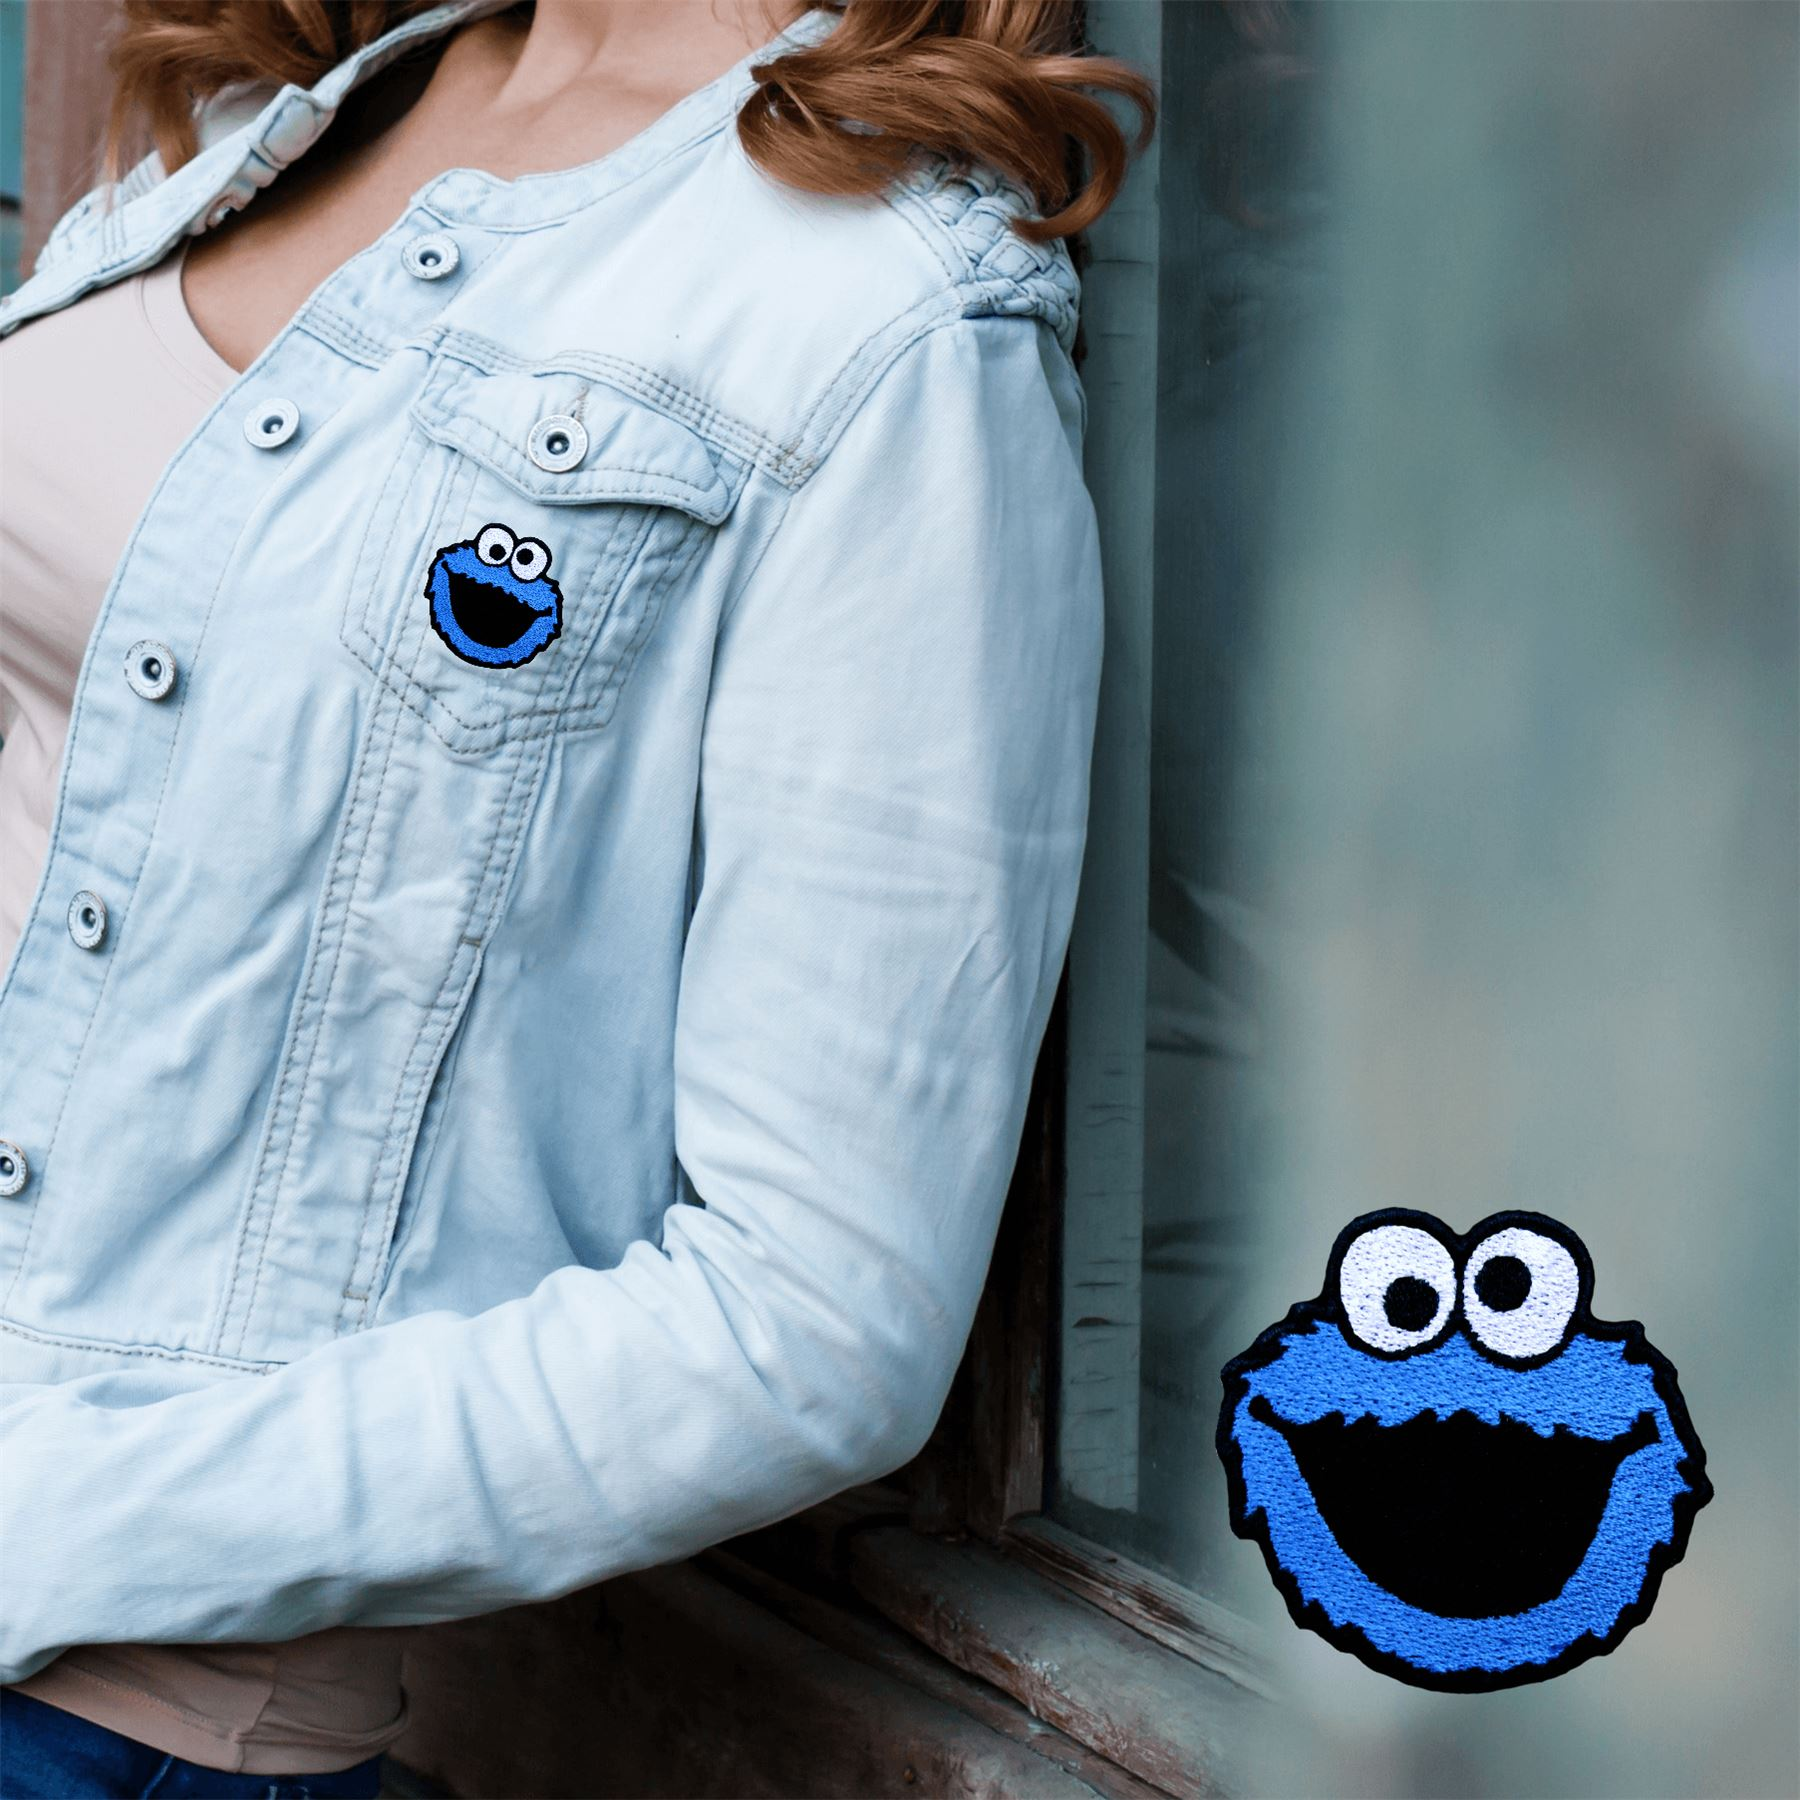 Embroidered Patches Iron Sew On Emoji Bag Cap Jeans Jacket Badge Applique